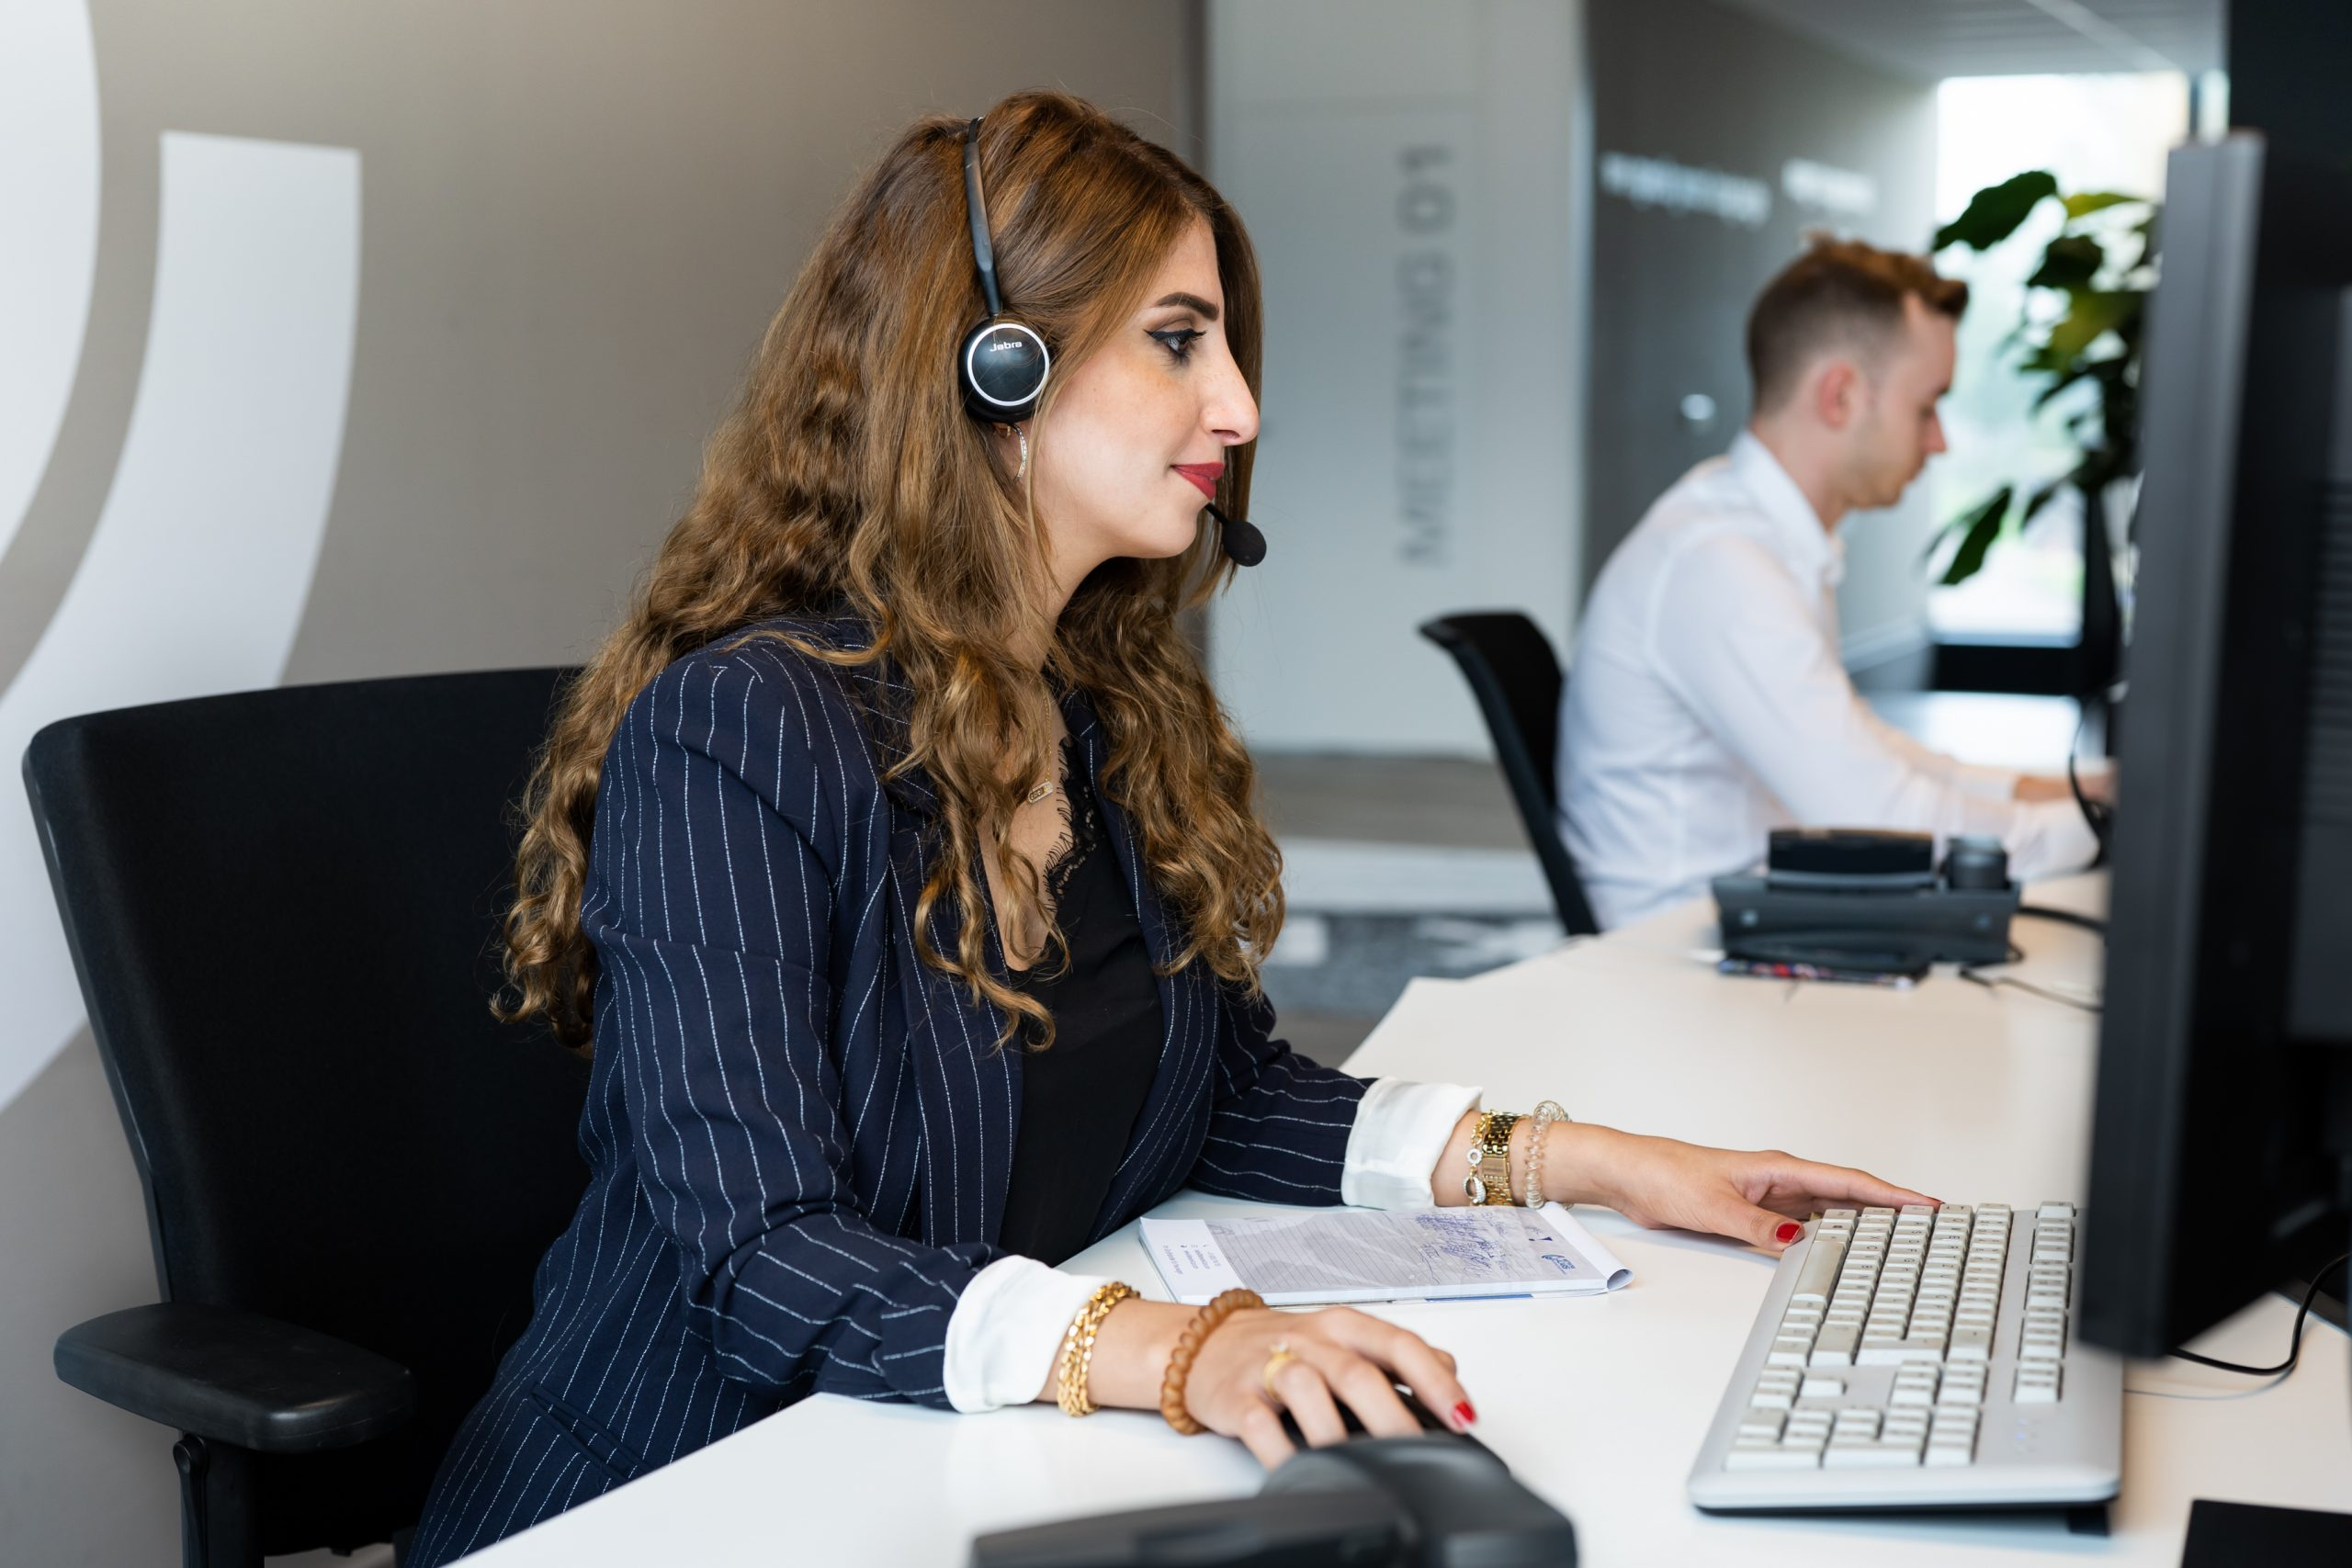 Photograph of an employee at Network4Cars sitting behind a computer, wearing a headset and business attire